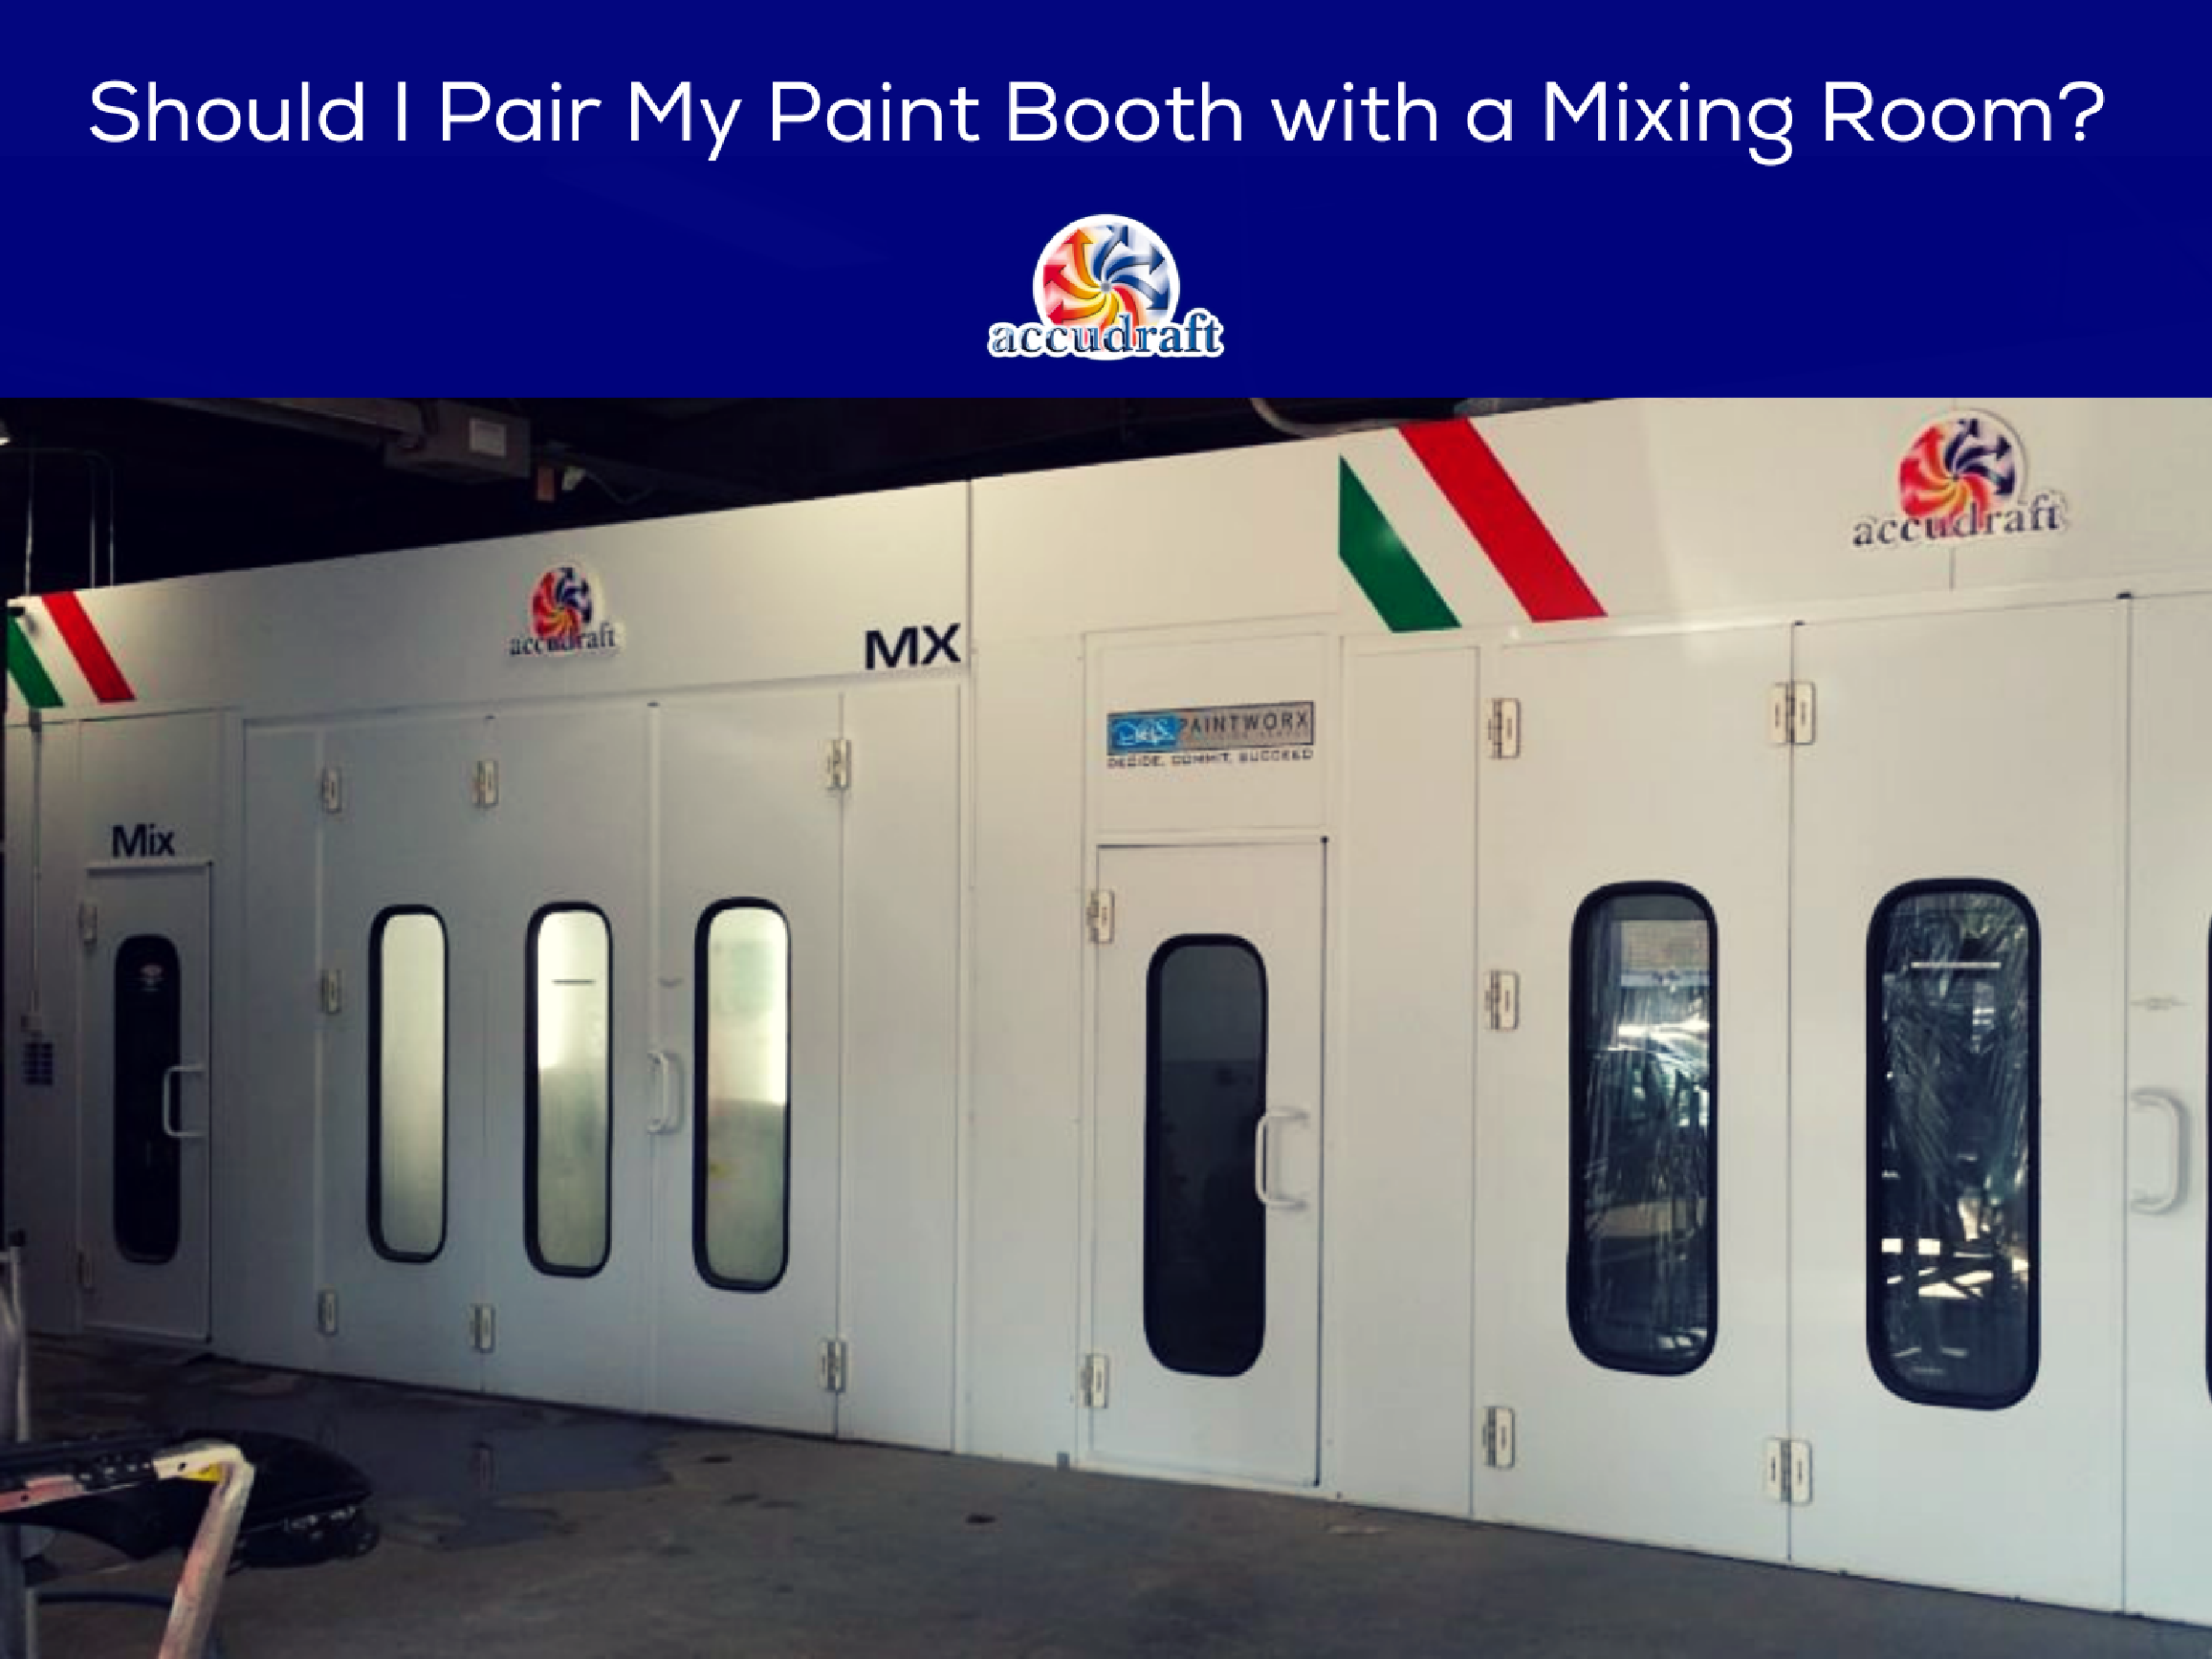 Should I Pair My Paint Booth with a Mixing Room? | Accudraft